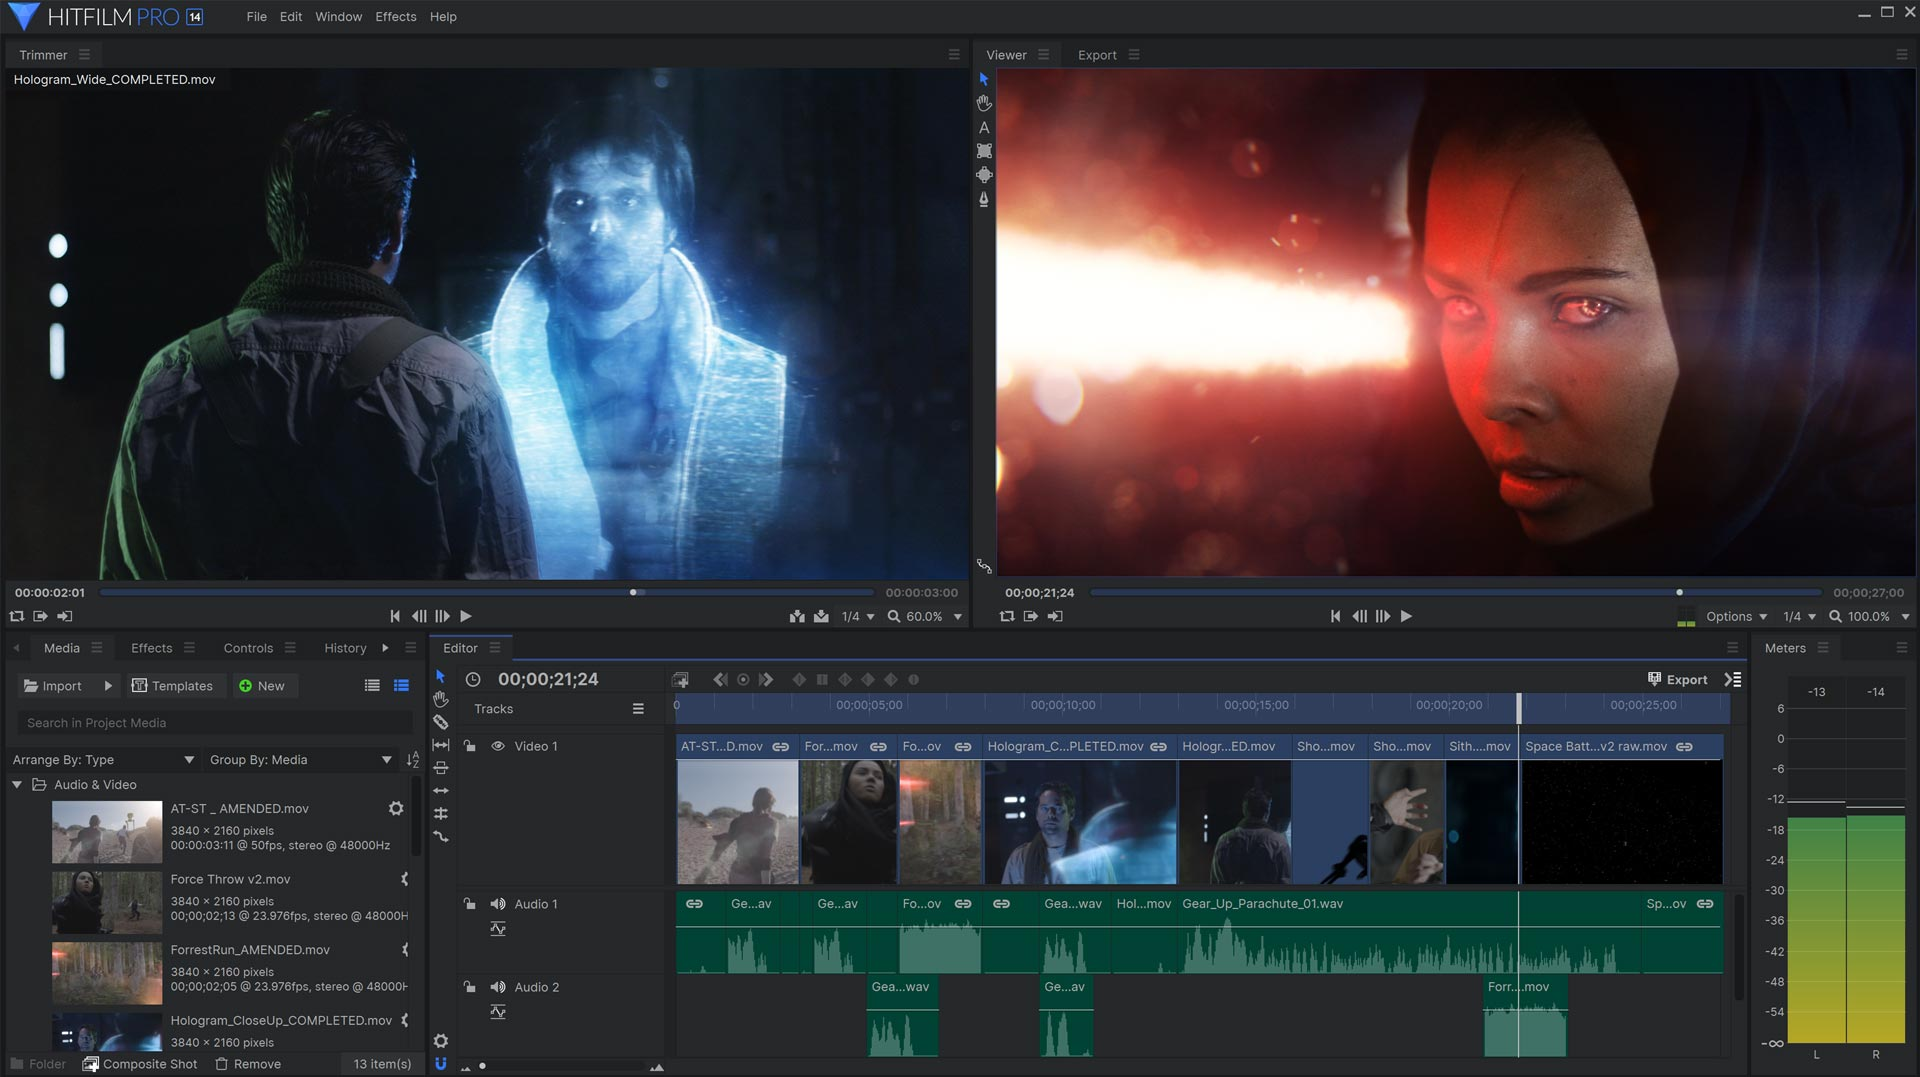 FXhome - Powerful creative software for filmmakers and